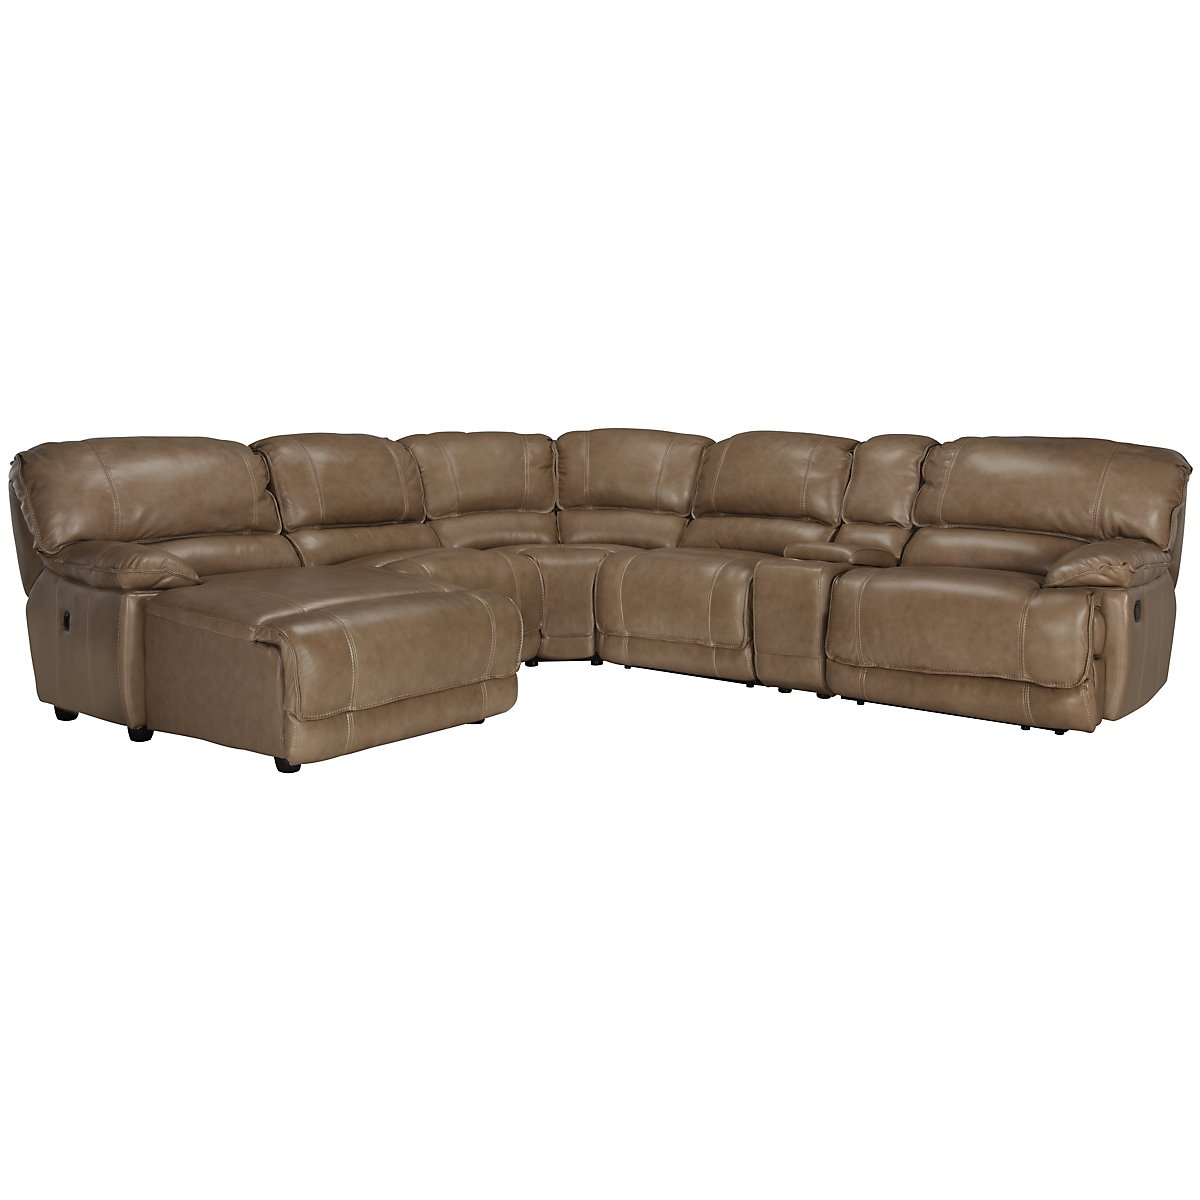 Benson Dk Taupe Leather & Vinyl Left Chaise Power Reclining Sectional